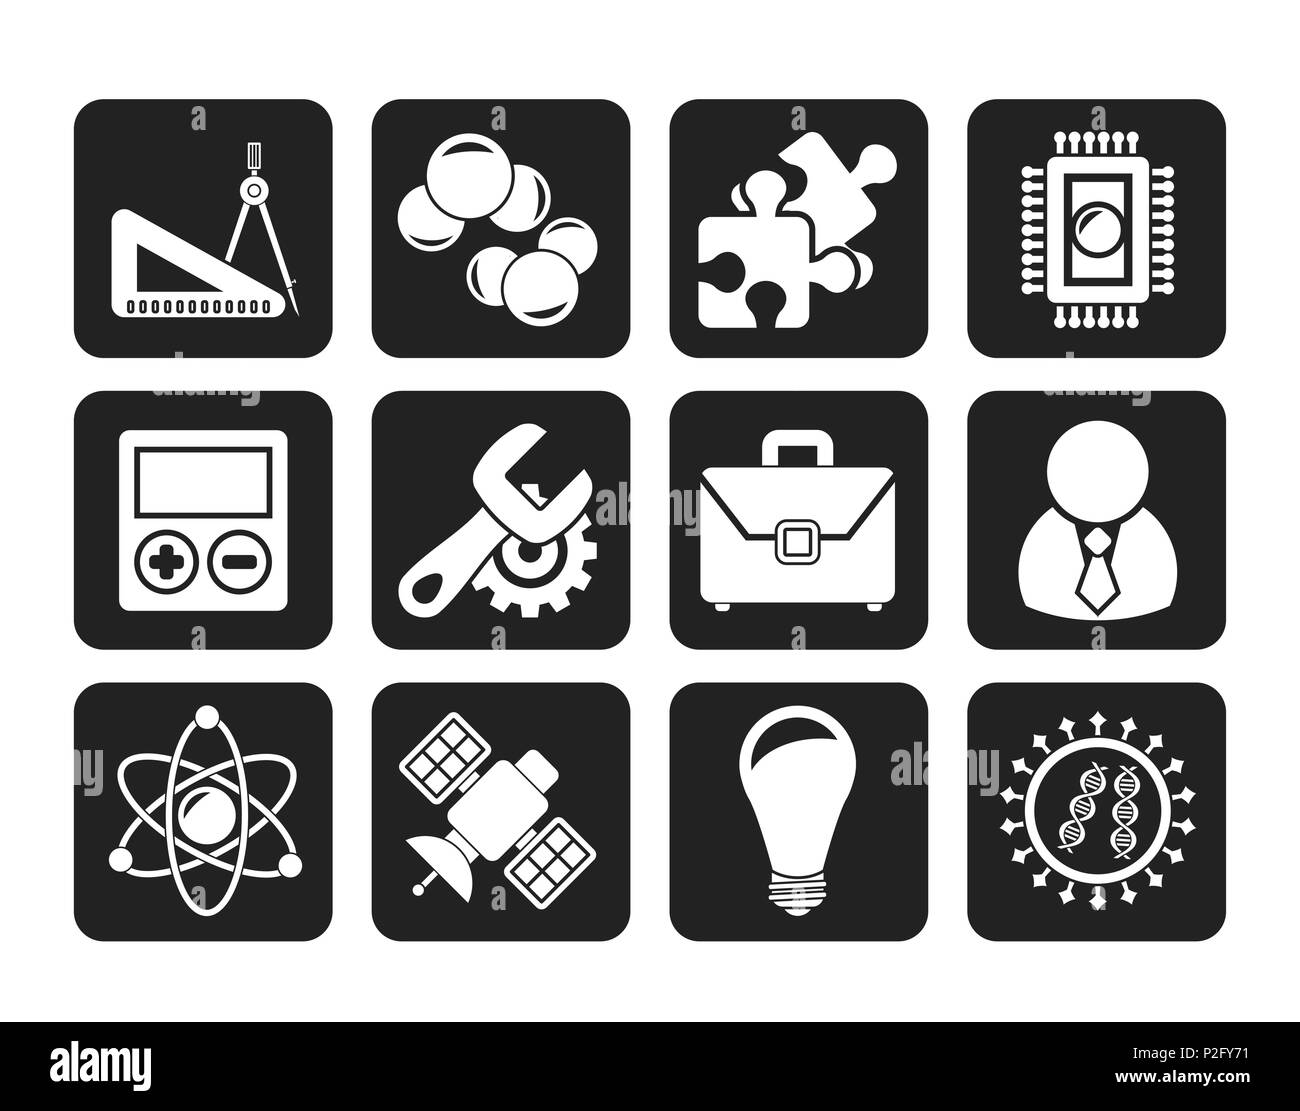 scientist vector vectors high resolution stock photography and images alamy alamy